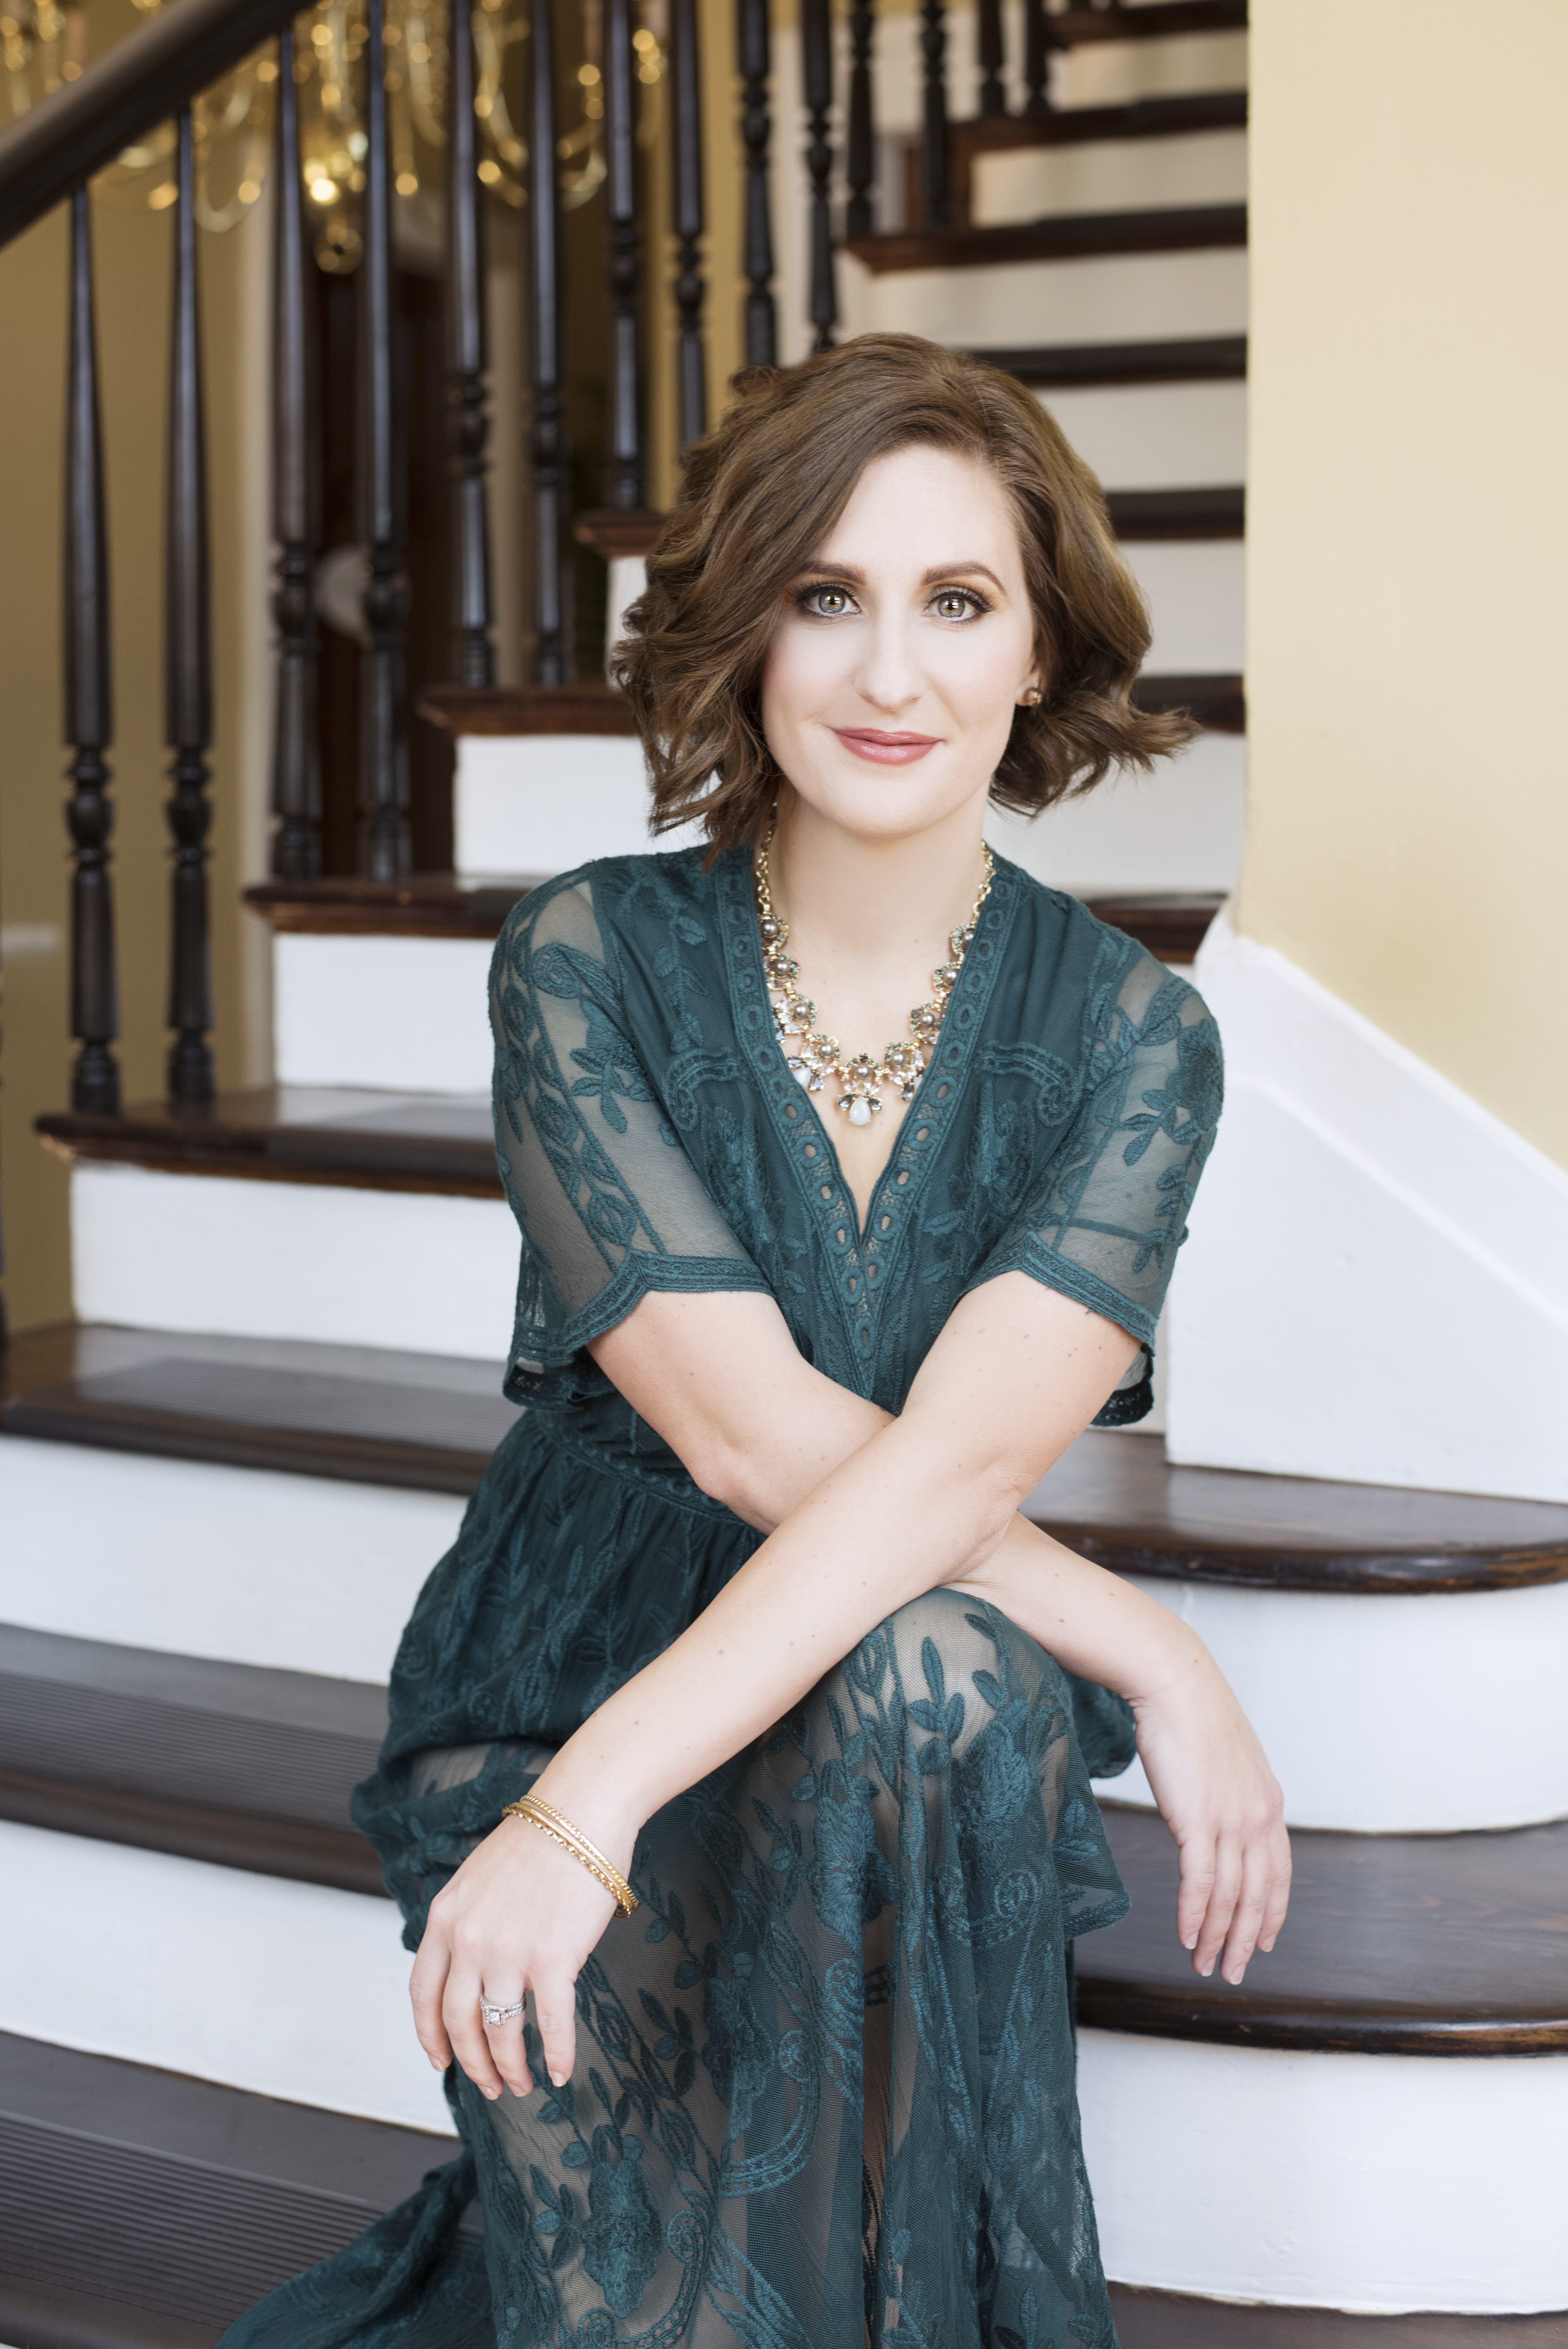 Beautiful smiling white woman with short brown hair wearing a green lace dress arms crossed sitting on staircase